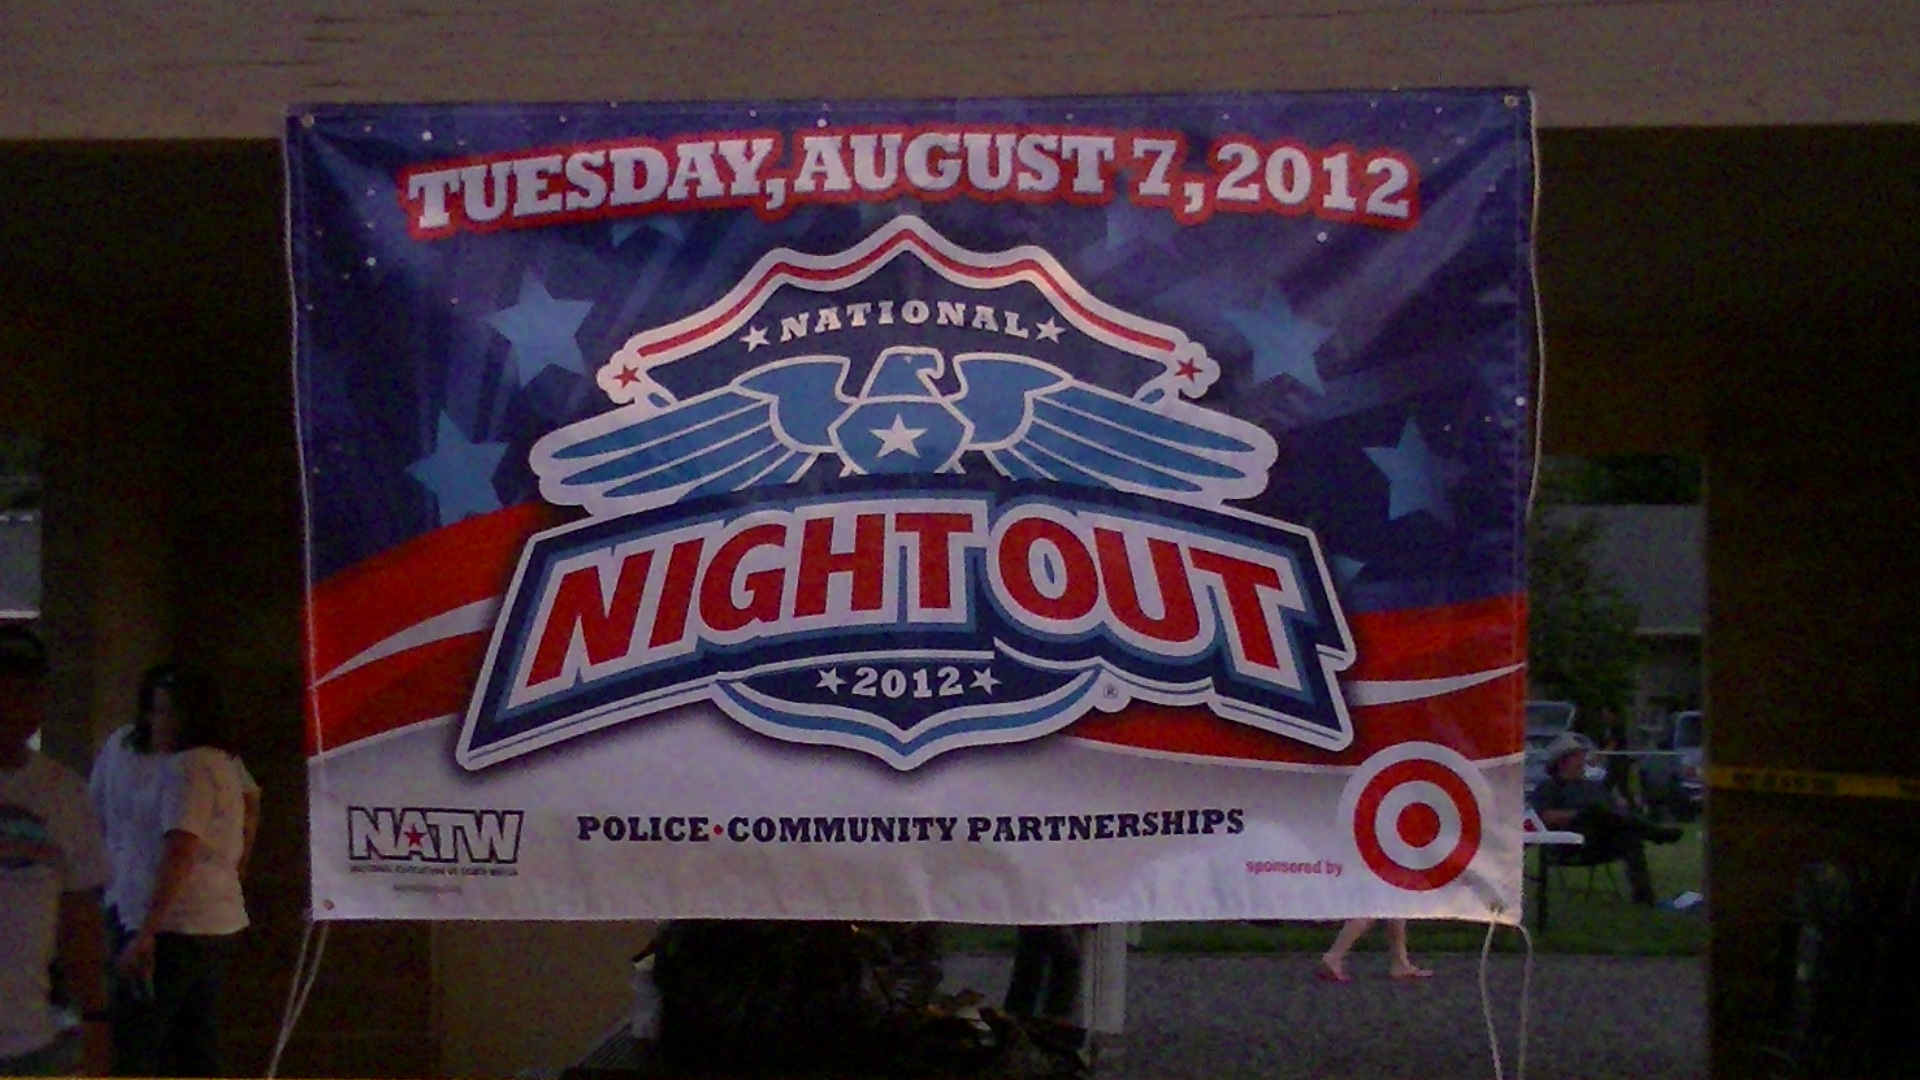 Eagle Point National Night Out 2012